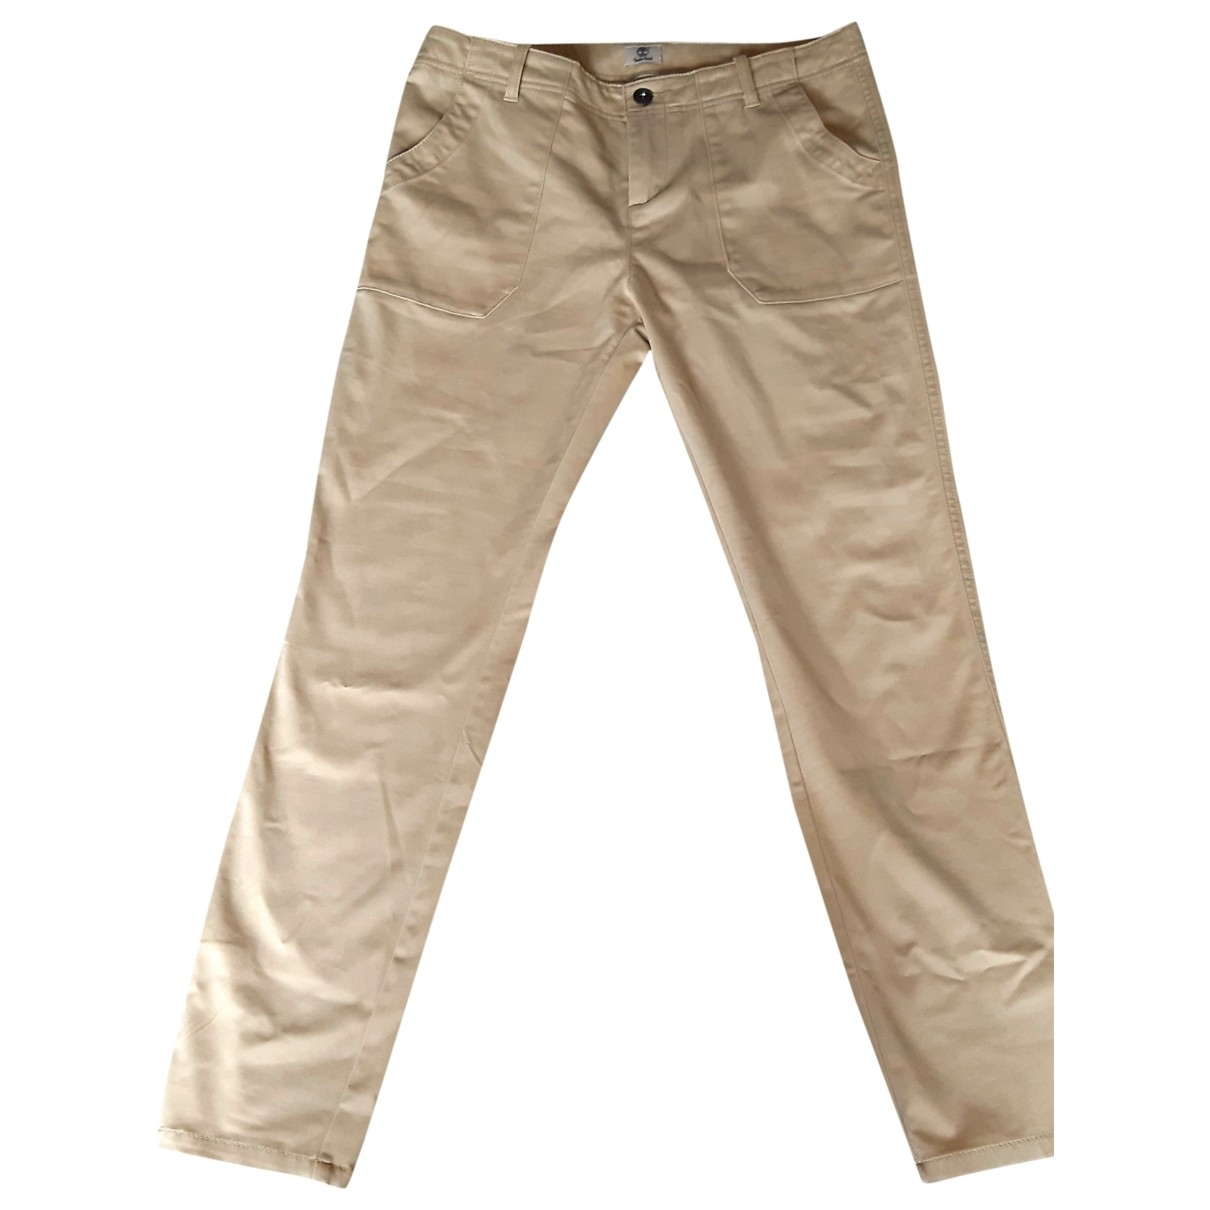 Timberland \N Beige Cotton Trousers for Women 6 US